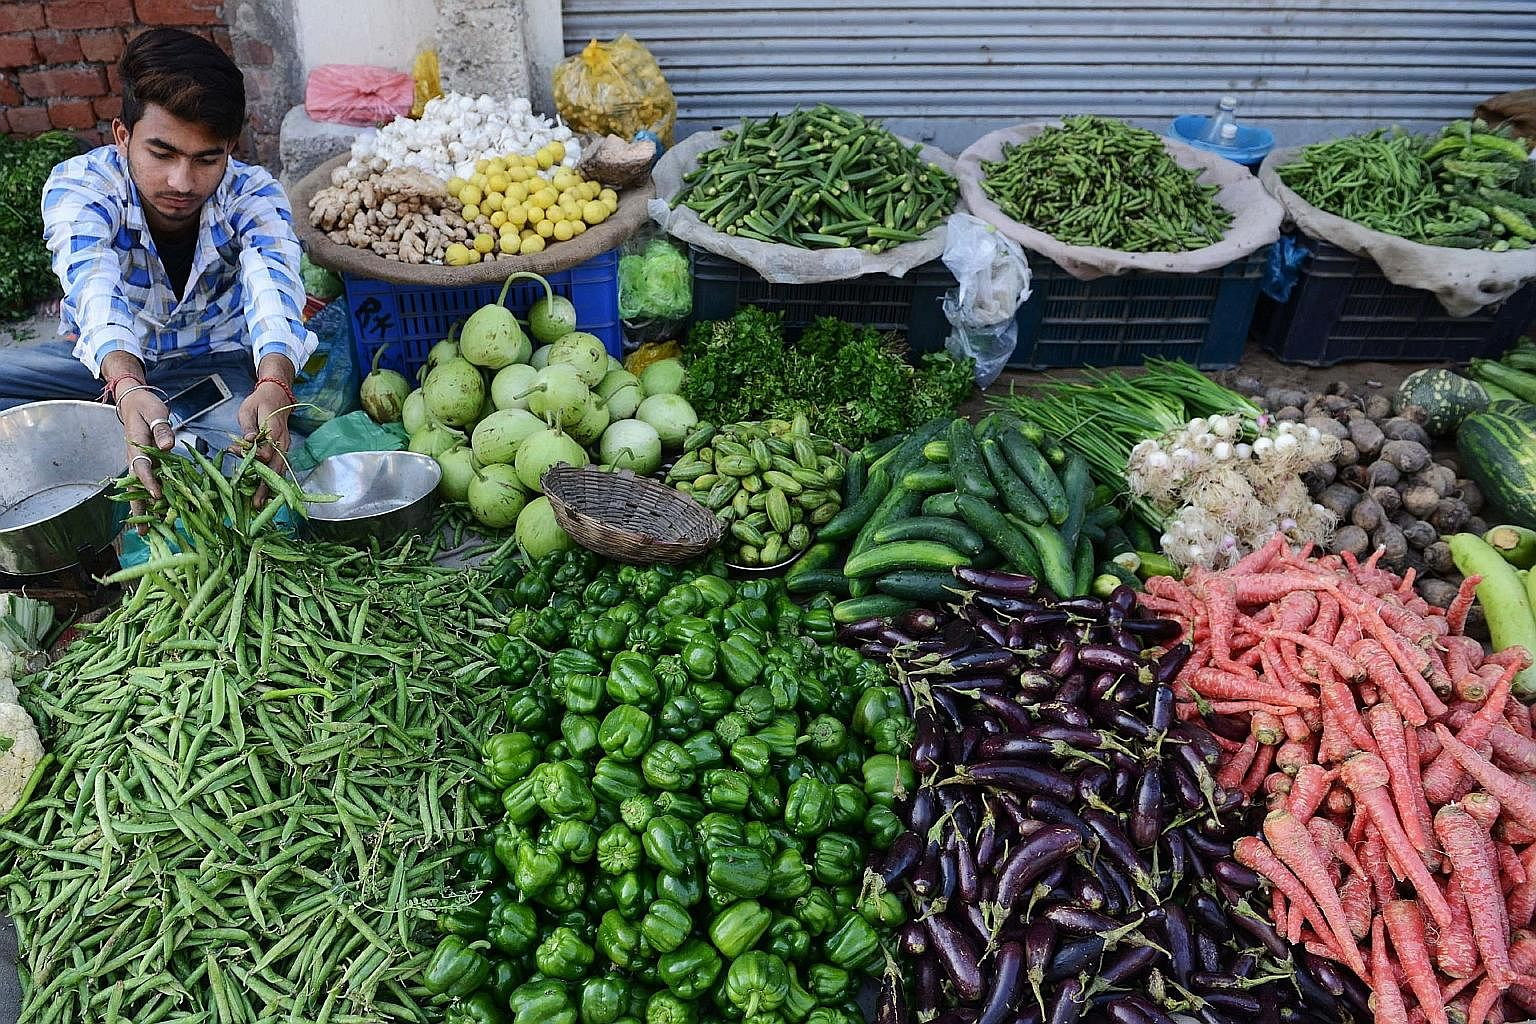 A vegetable seller in India. Global warming will likely make vegetables scarcer worldwide, said researchers.